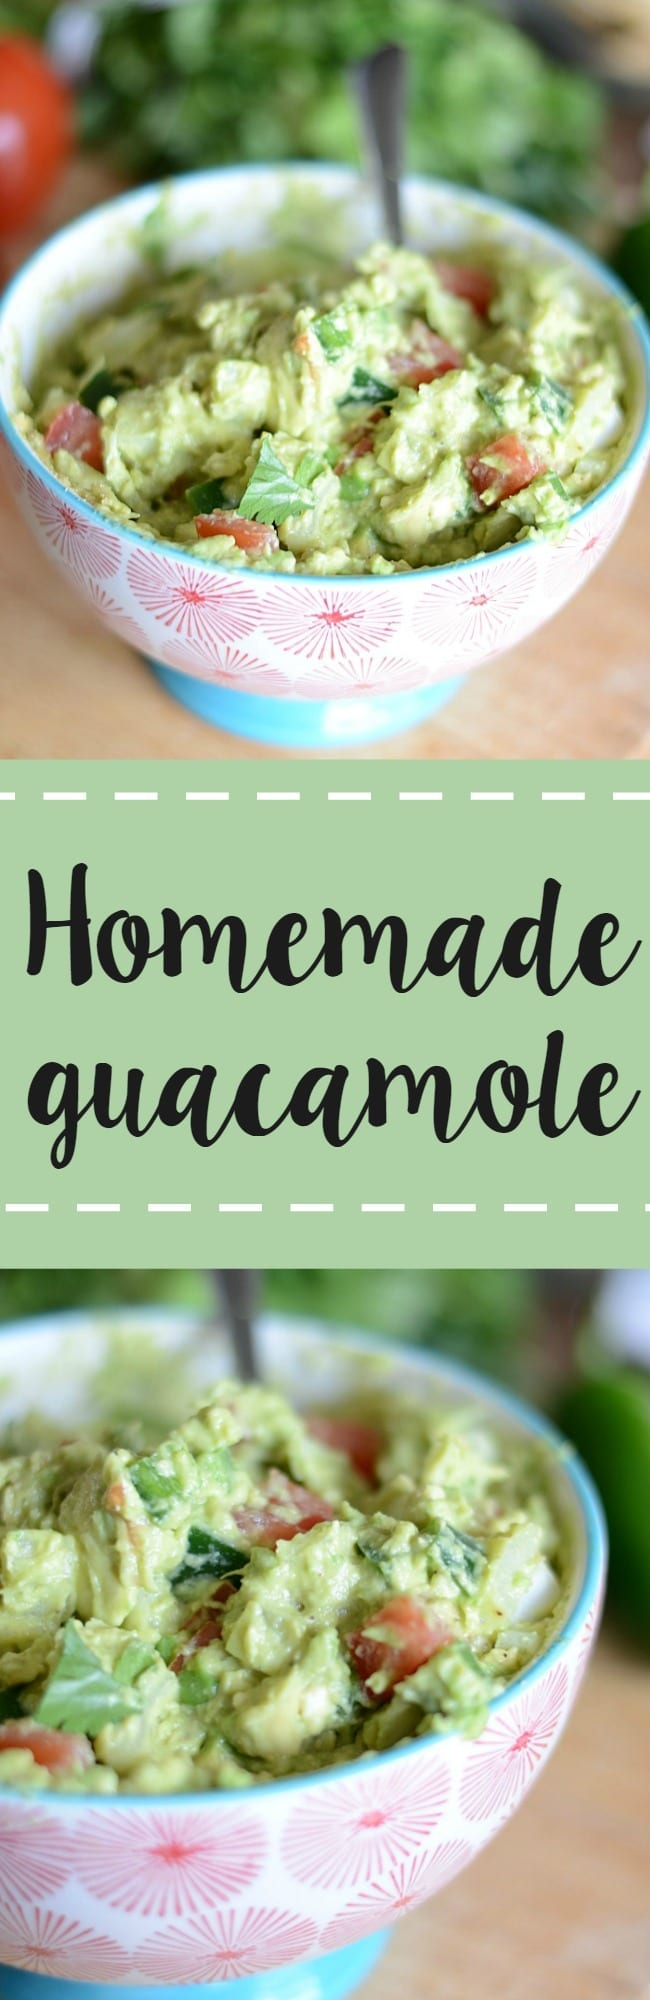 Easy homemade guacamole recipe! I always get asked my recipe when I make this - it's that good!